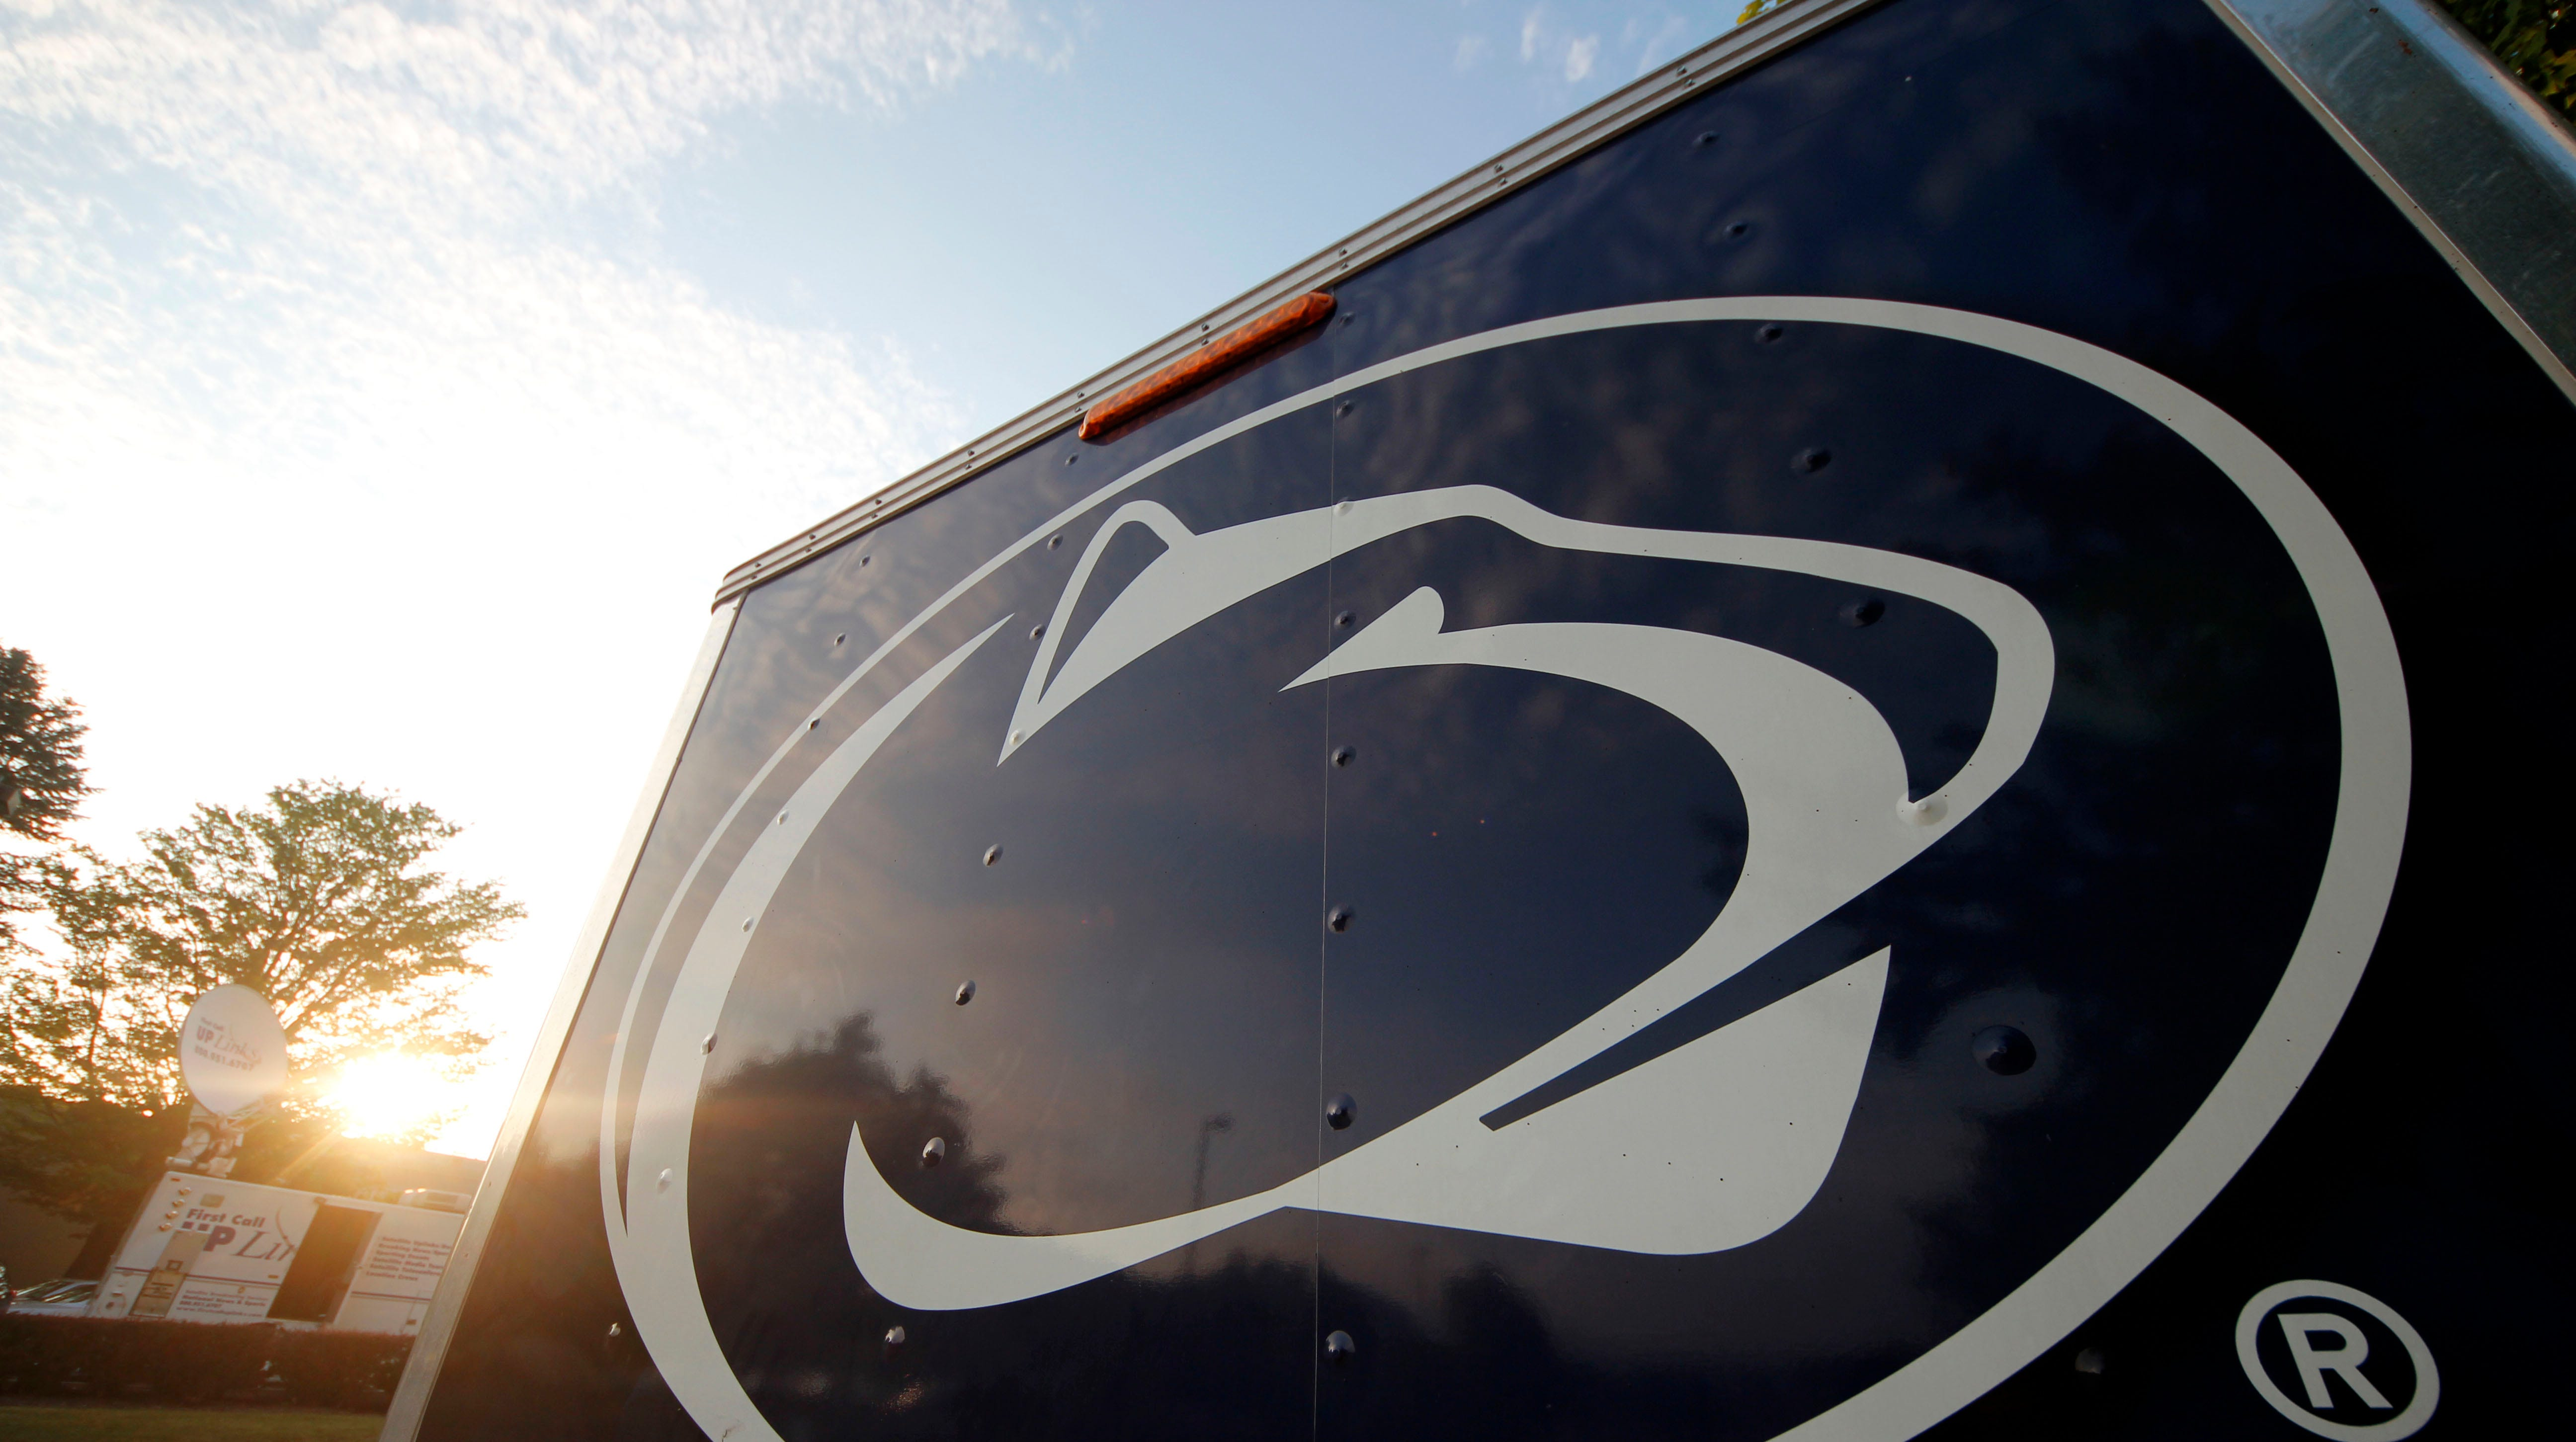 This is a Penn State University logo on the side of a merchandise trailer outside Beaver Stadium.